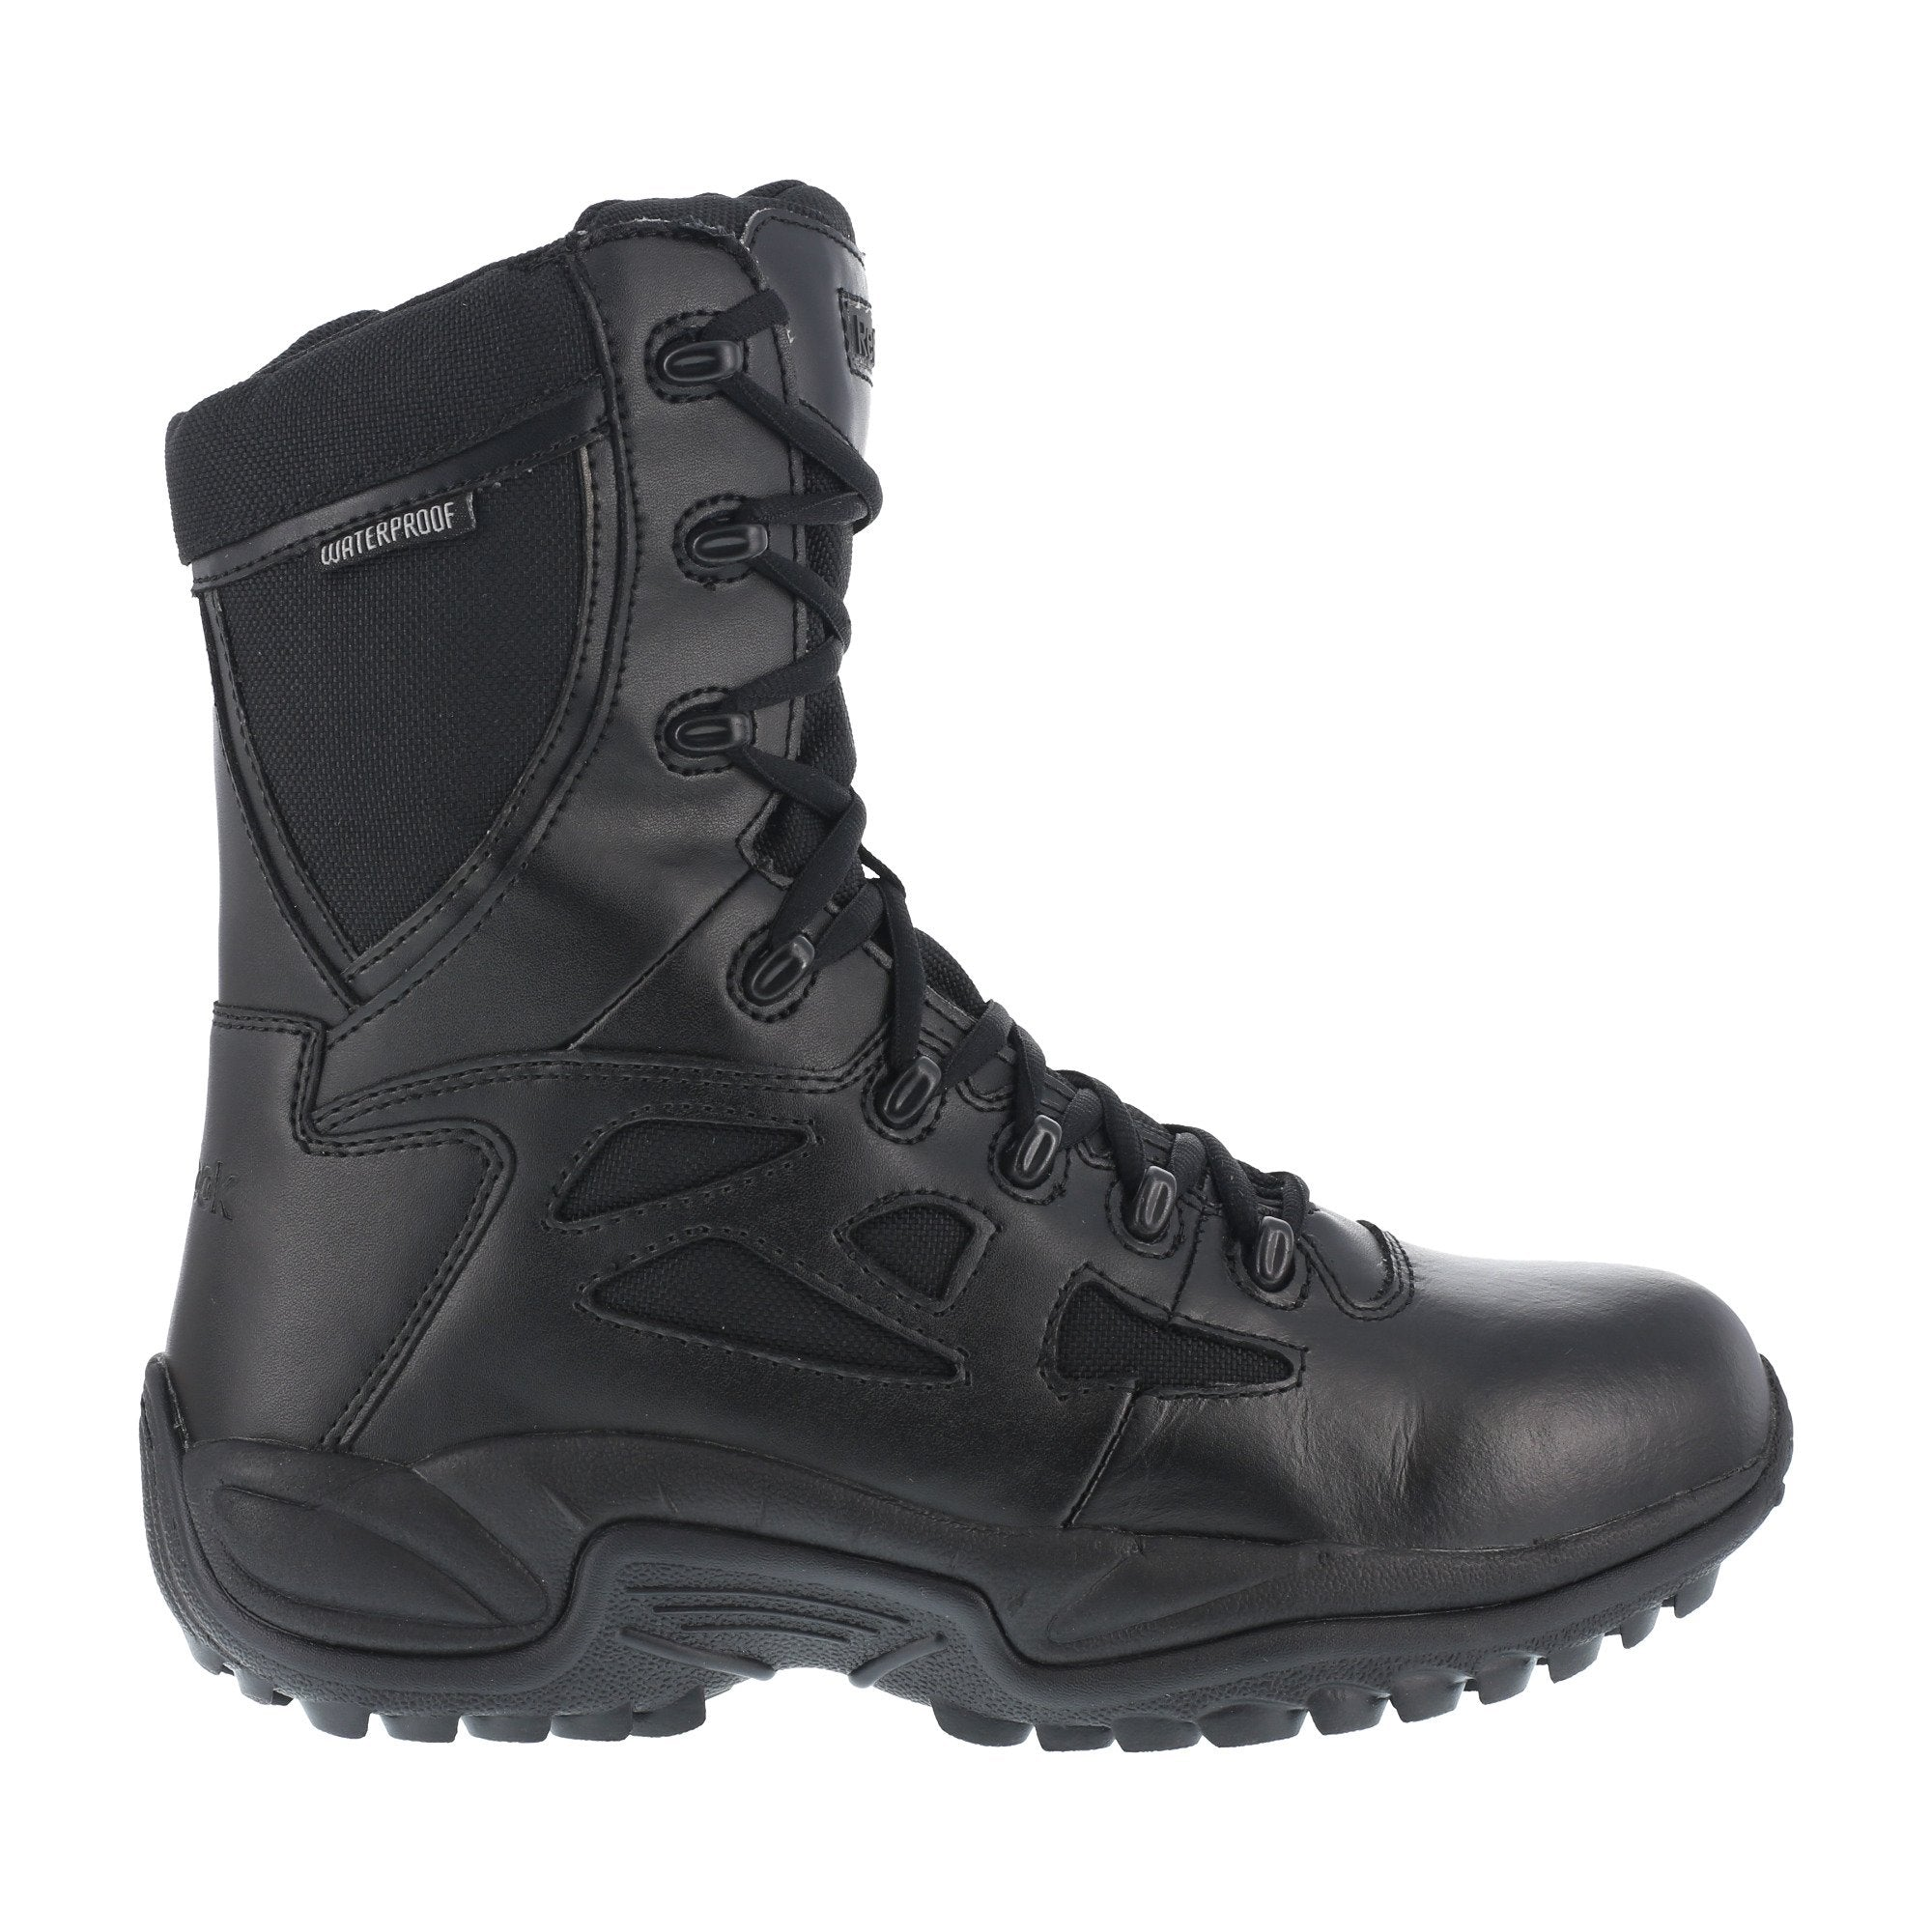 133d69aa0f0 Reebok Mens Black Leather WP Tactical Boots Rapid Response RB Soft ...